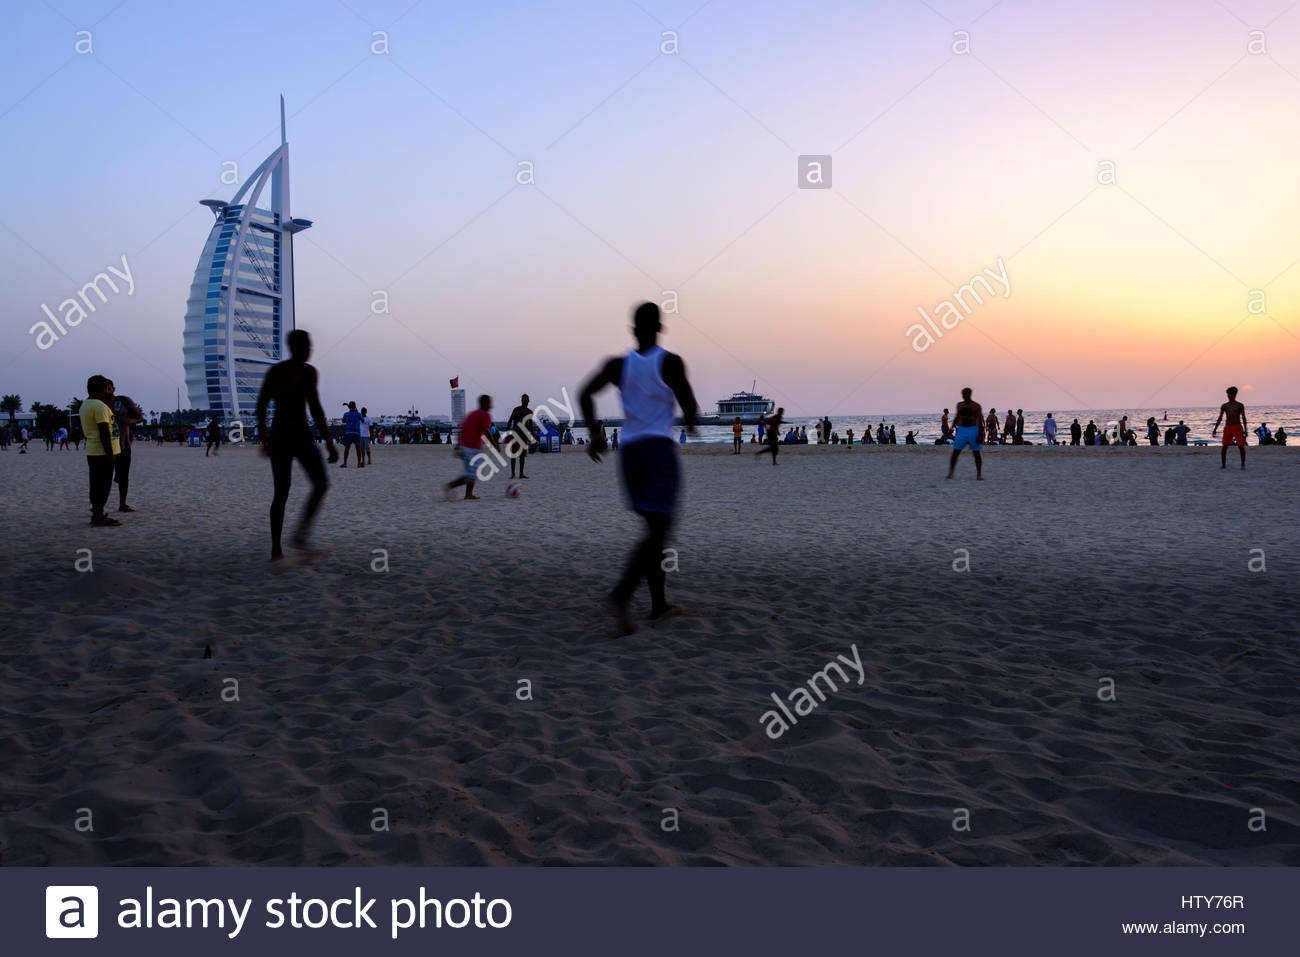 Sunset on Burj Al Arab with people playing football, chatting, walking etc.., Dubai, United Arab Emirates - Stock Image